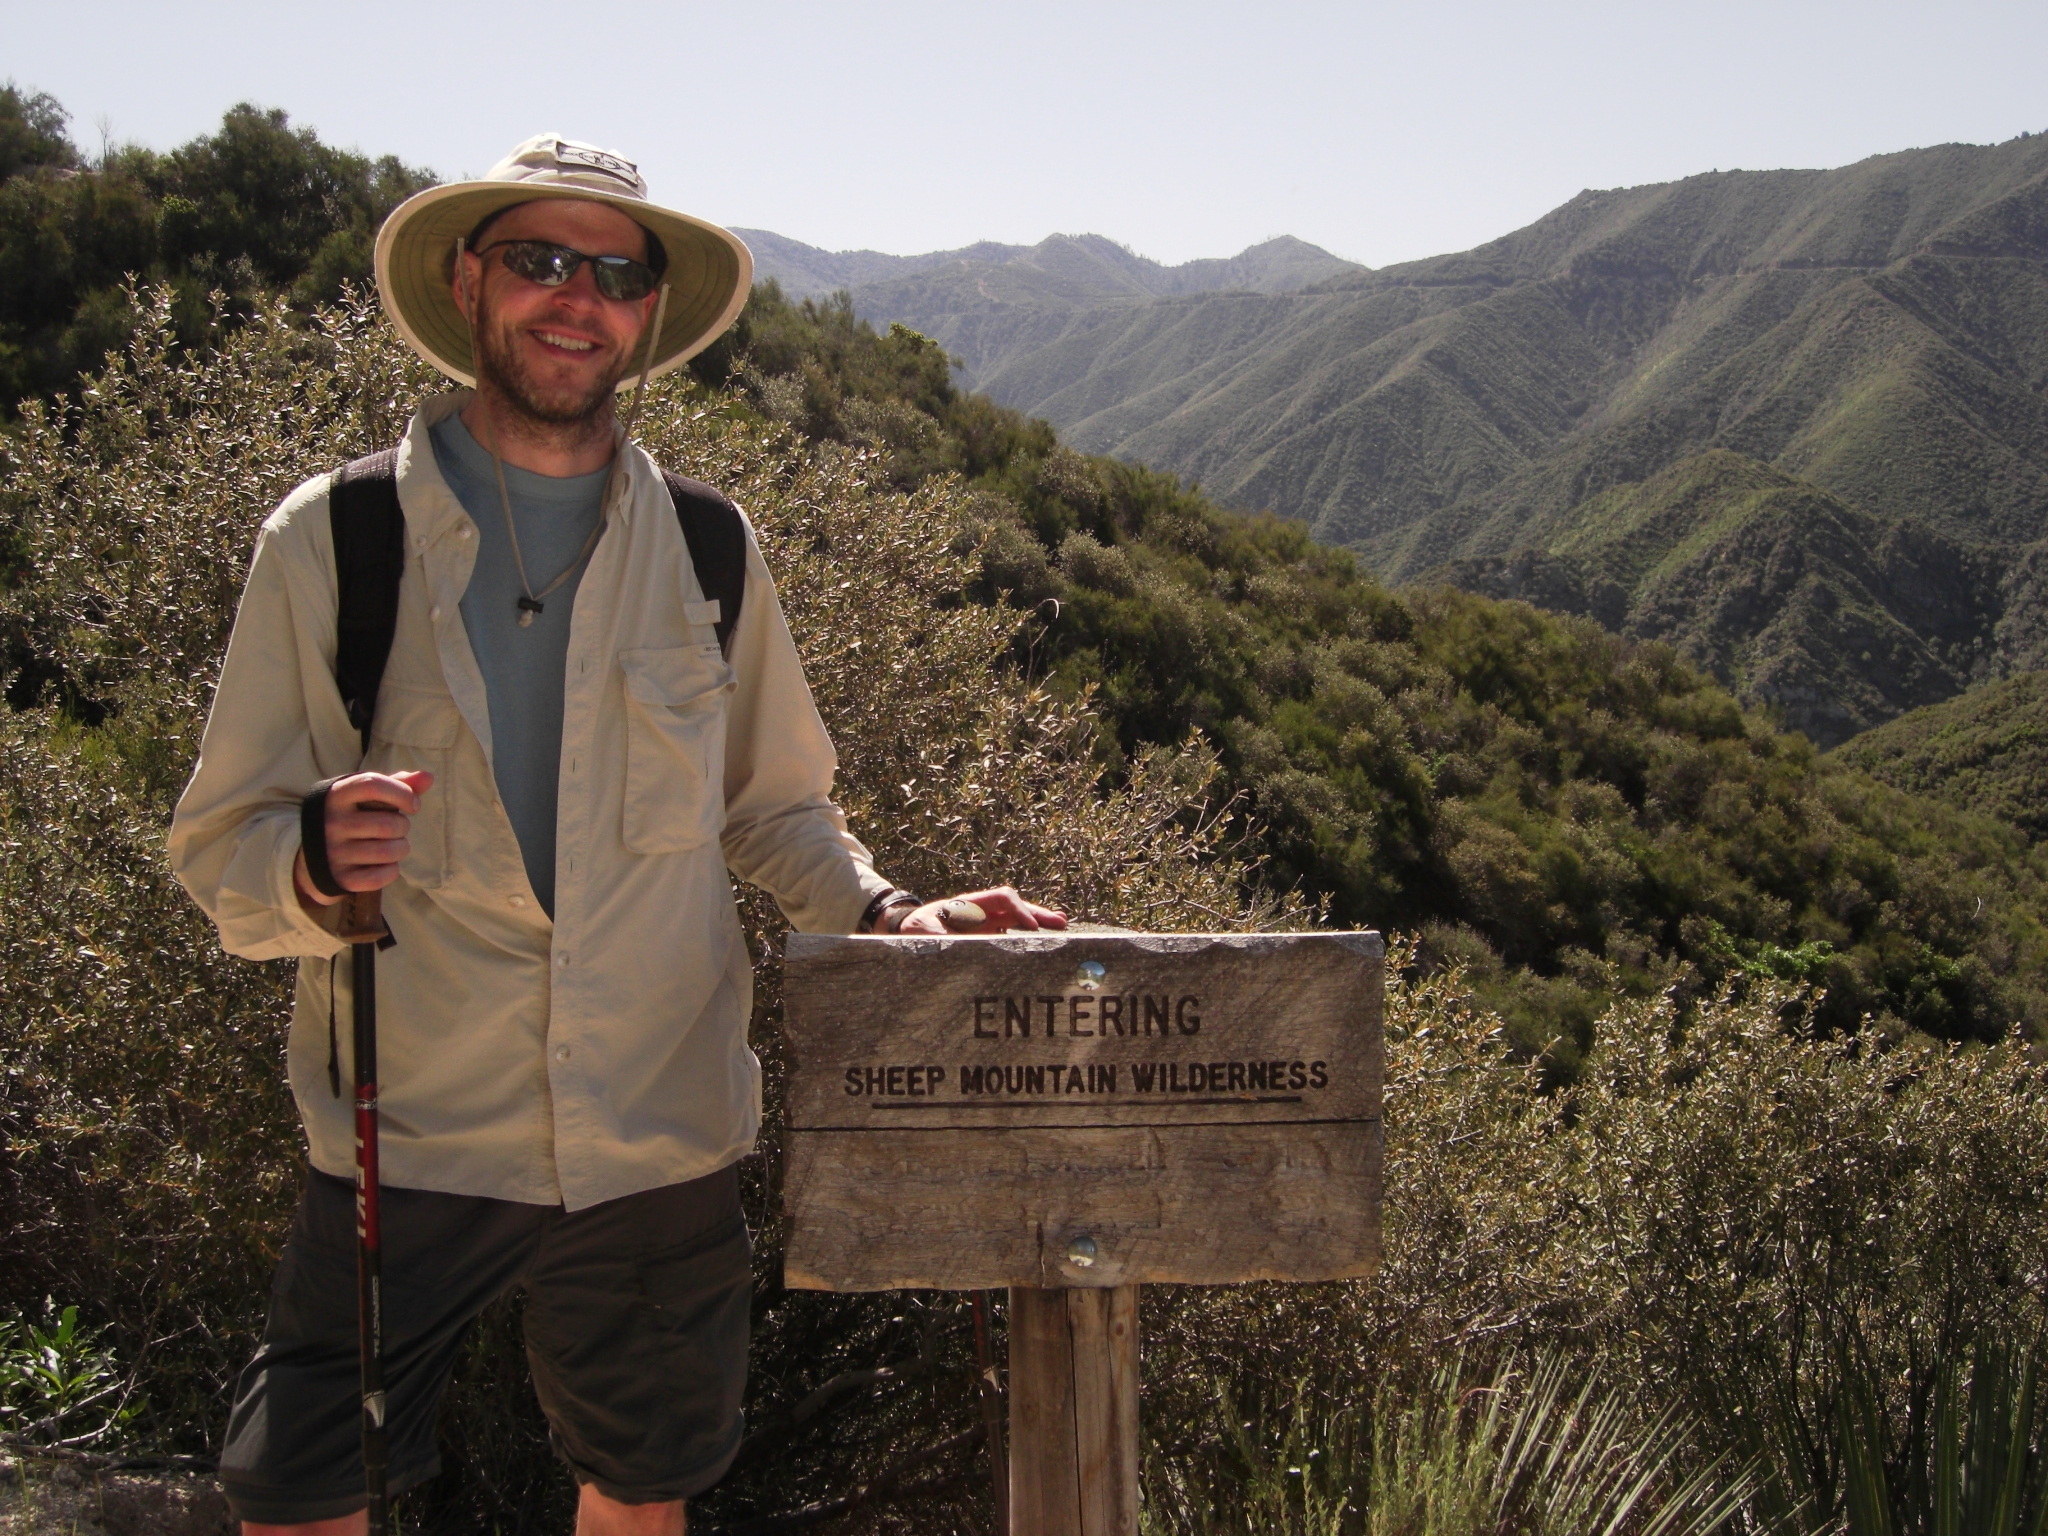 Crossing over from Angeles National Forest to Sheep Mountain Wilderness.